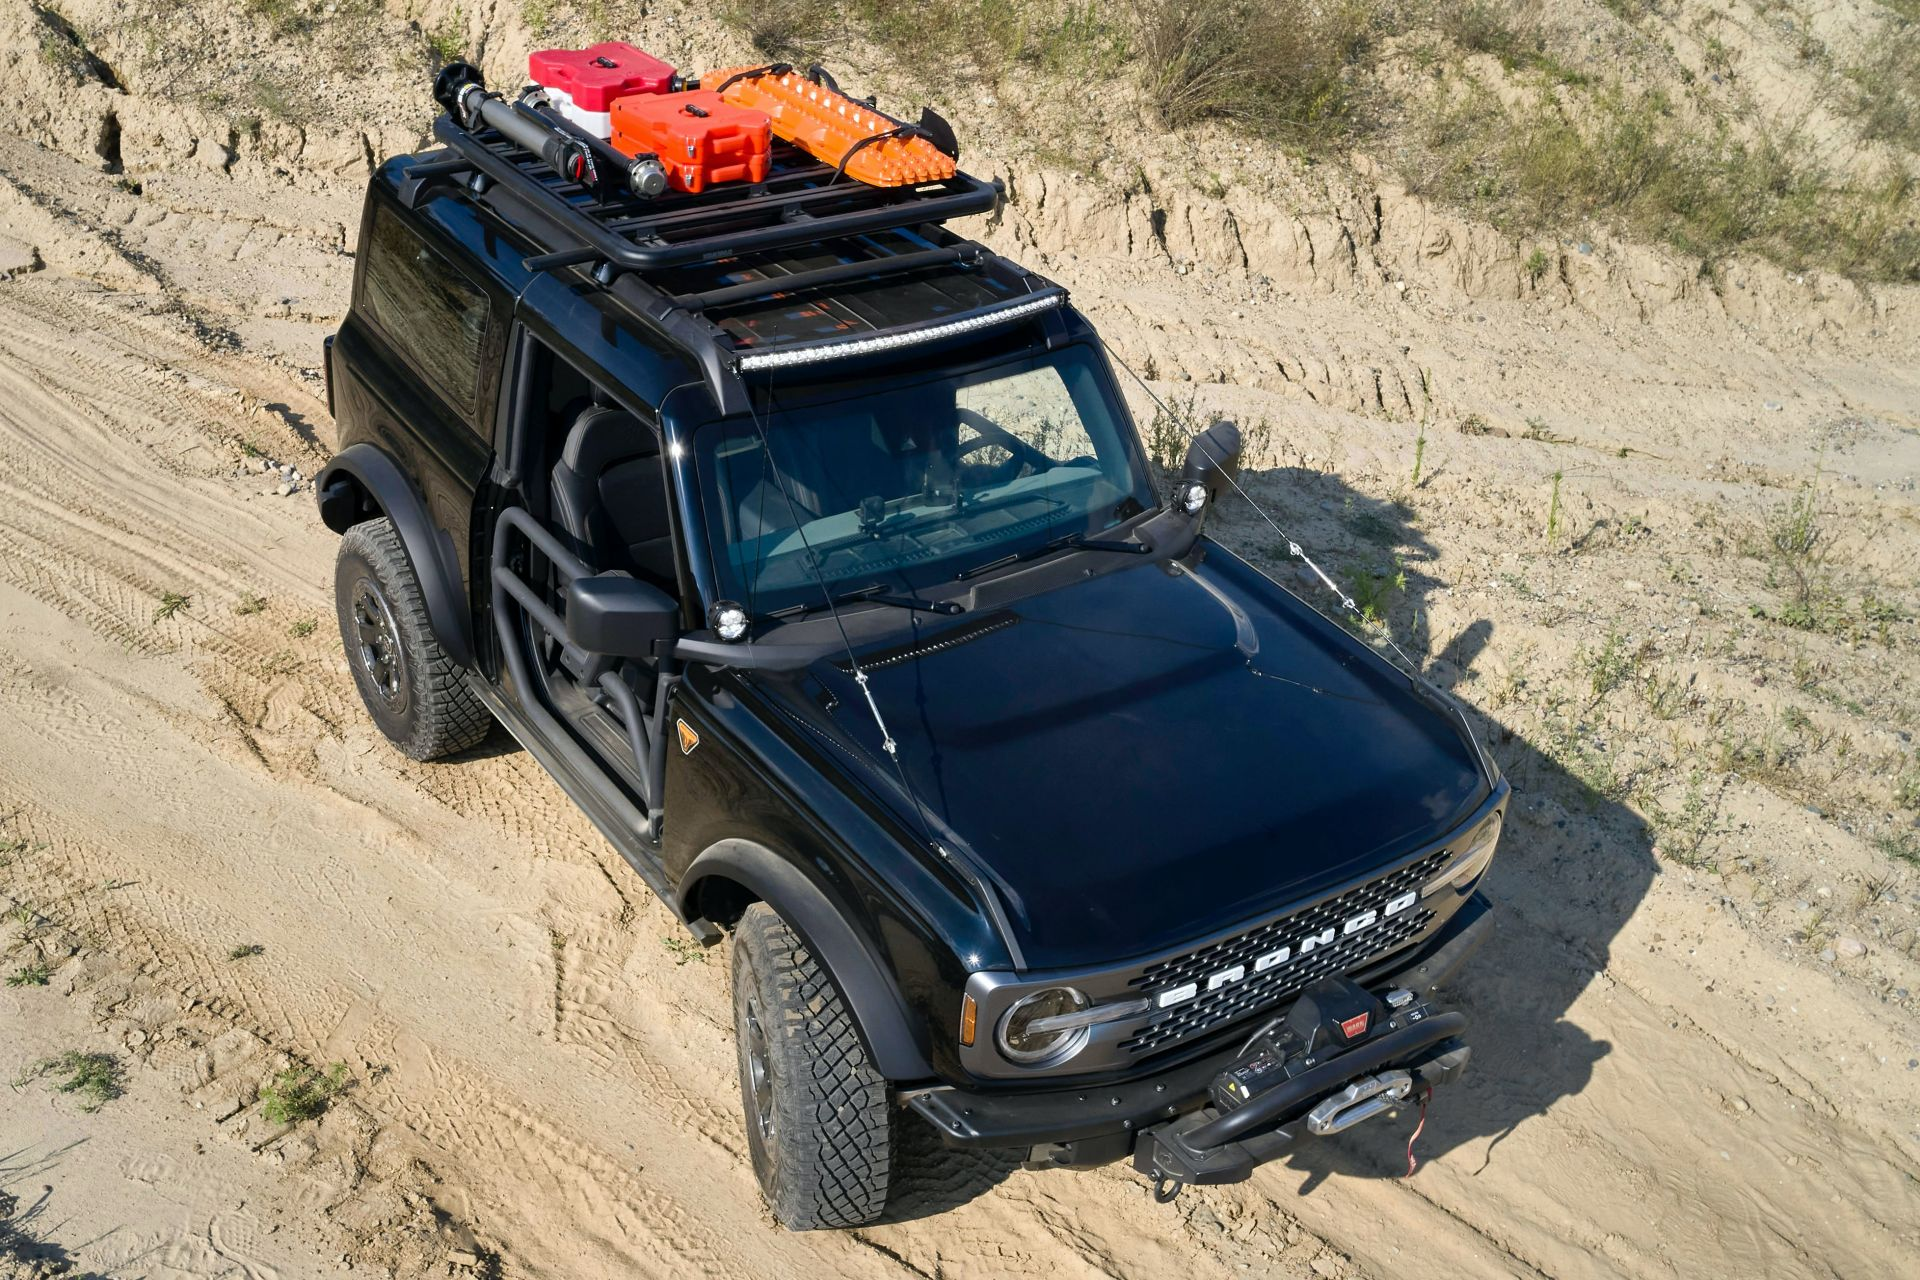 Ford-Bronco-2-Door-Trail-Rig-Concept-1